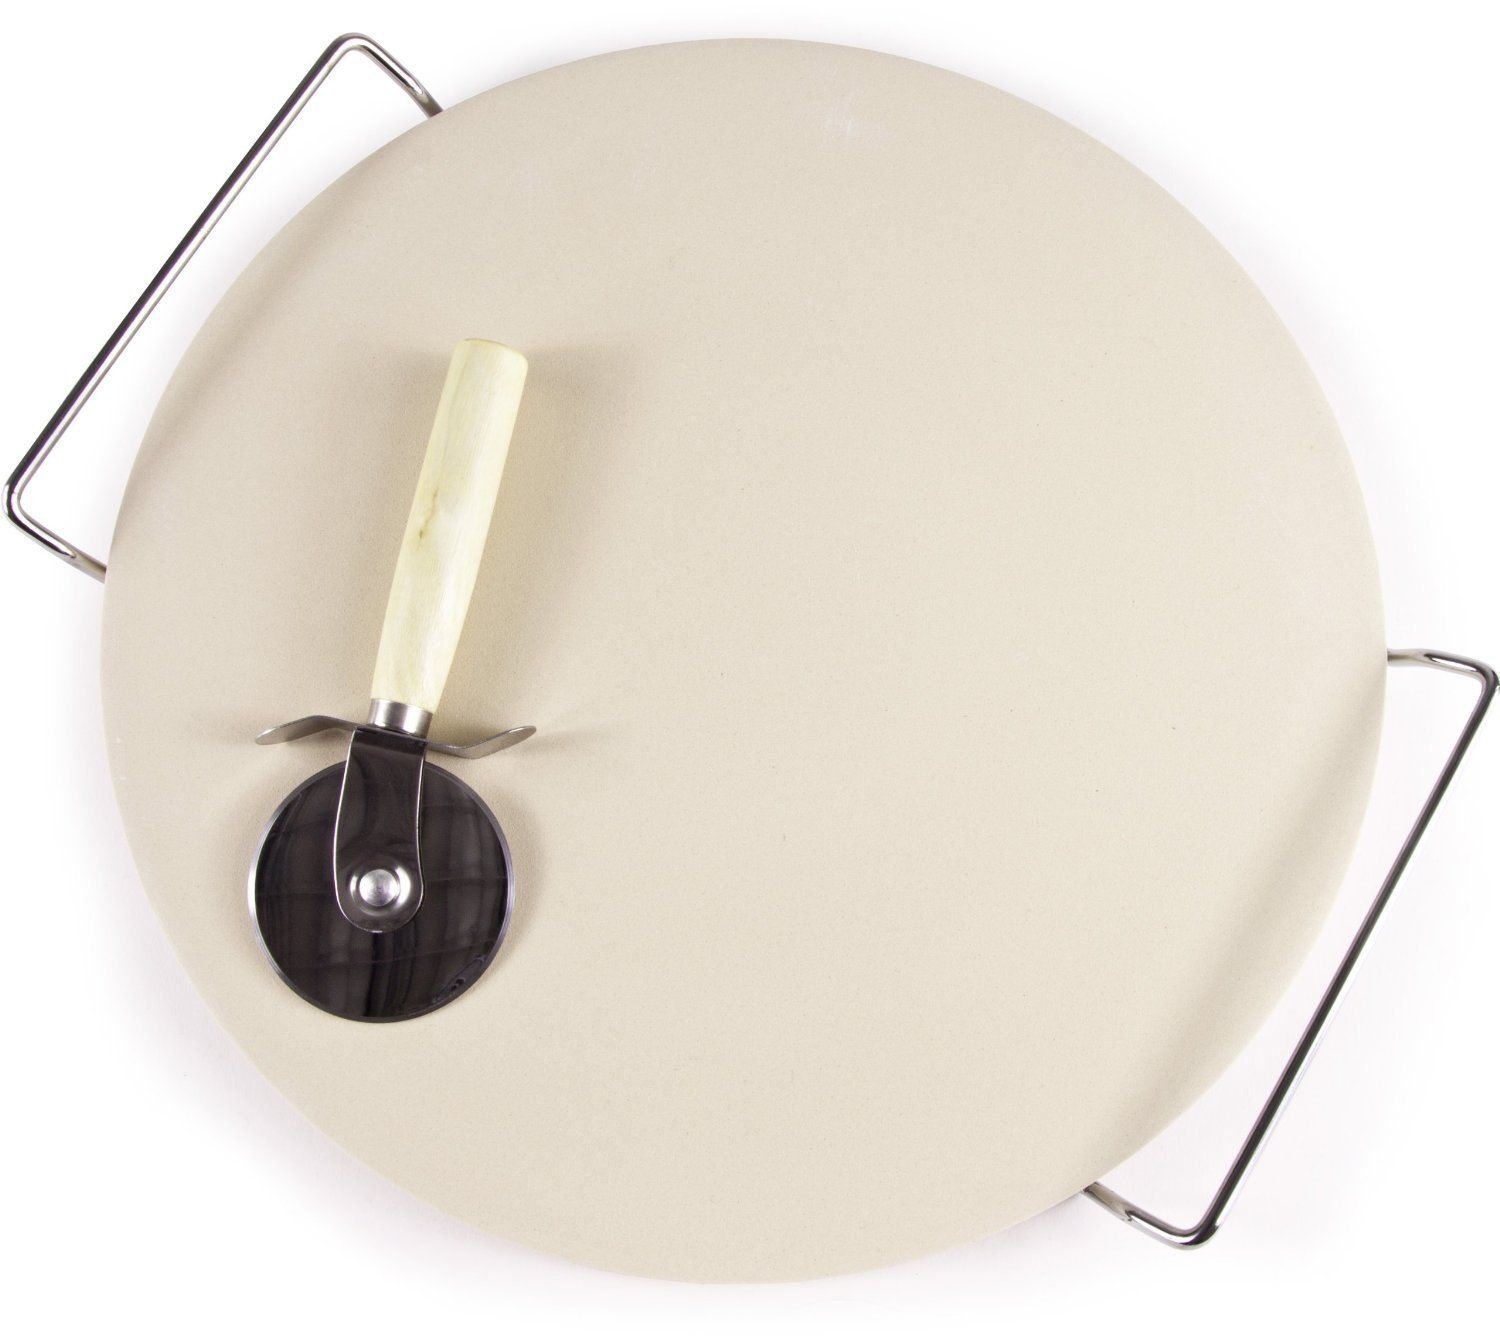 Kabalo 33cm Pizza Stone and Wooden Handle Pizza Wheel Slicer Set